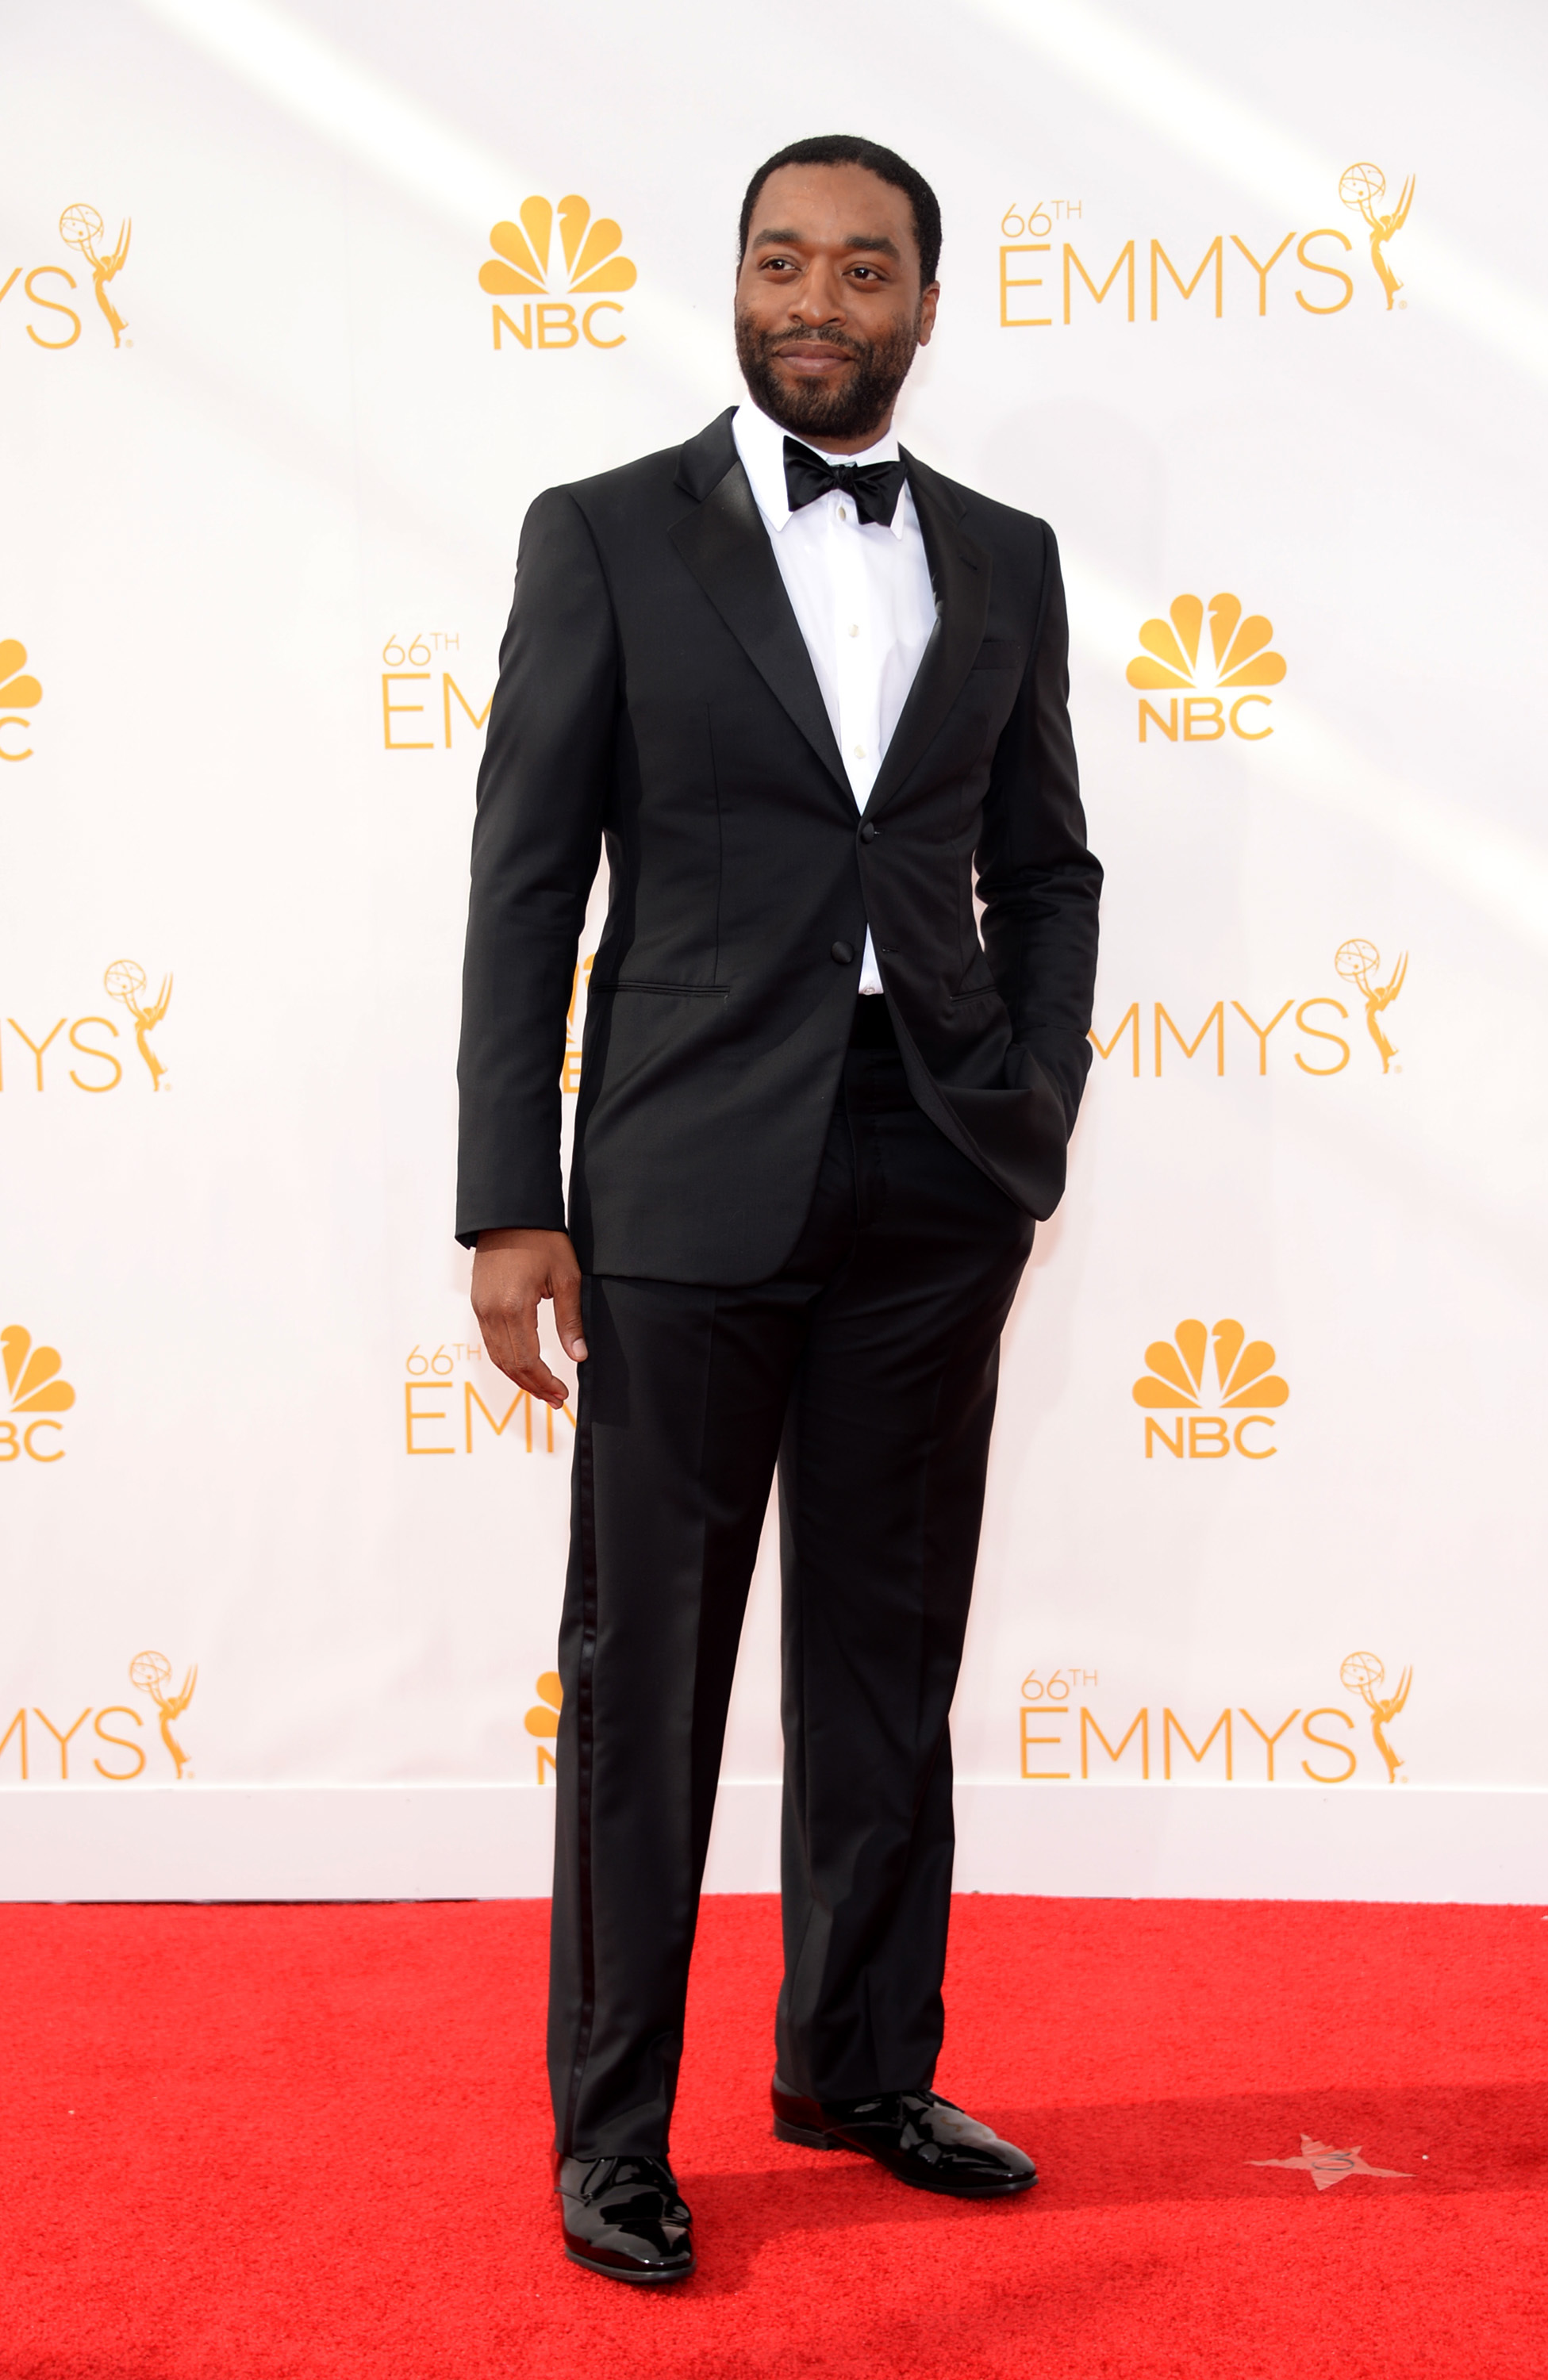 Chiwetel Eijiofor: Green lighting an all white movie 'is a choice'